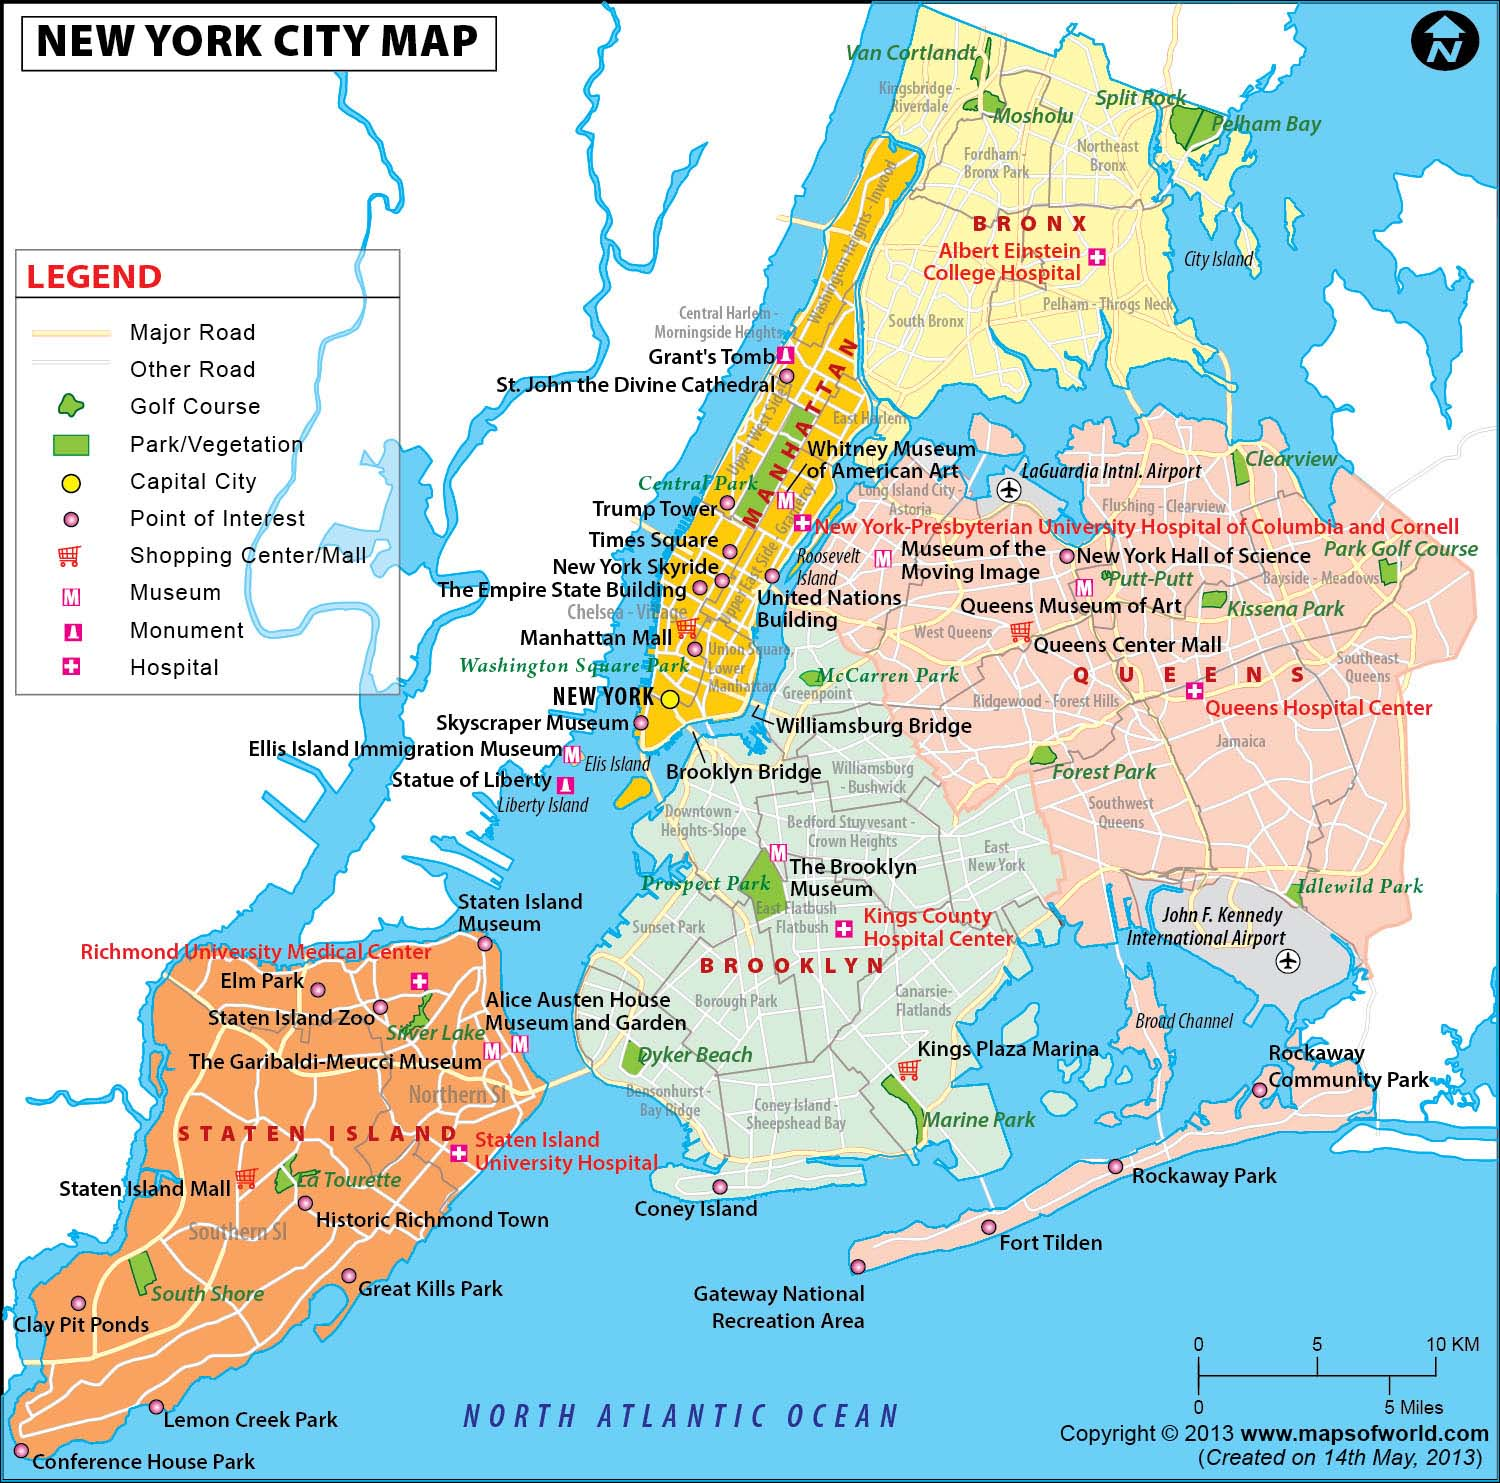 NYC Map New York City Map Map Of New York City - Usa full map